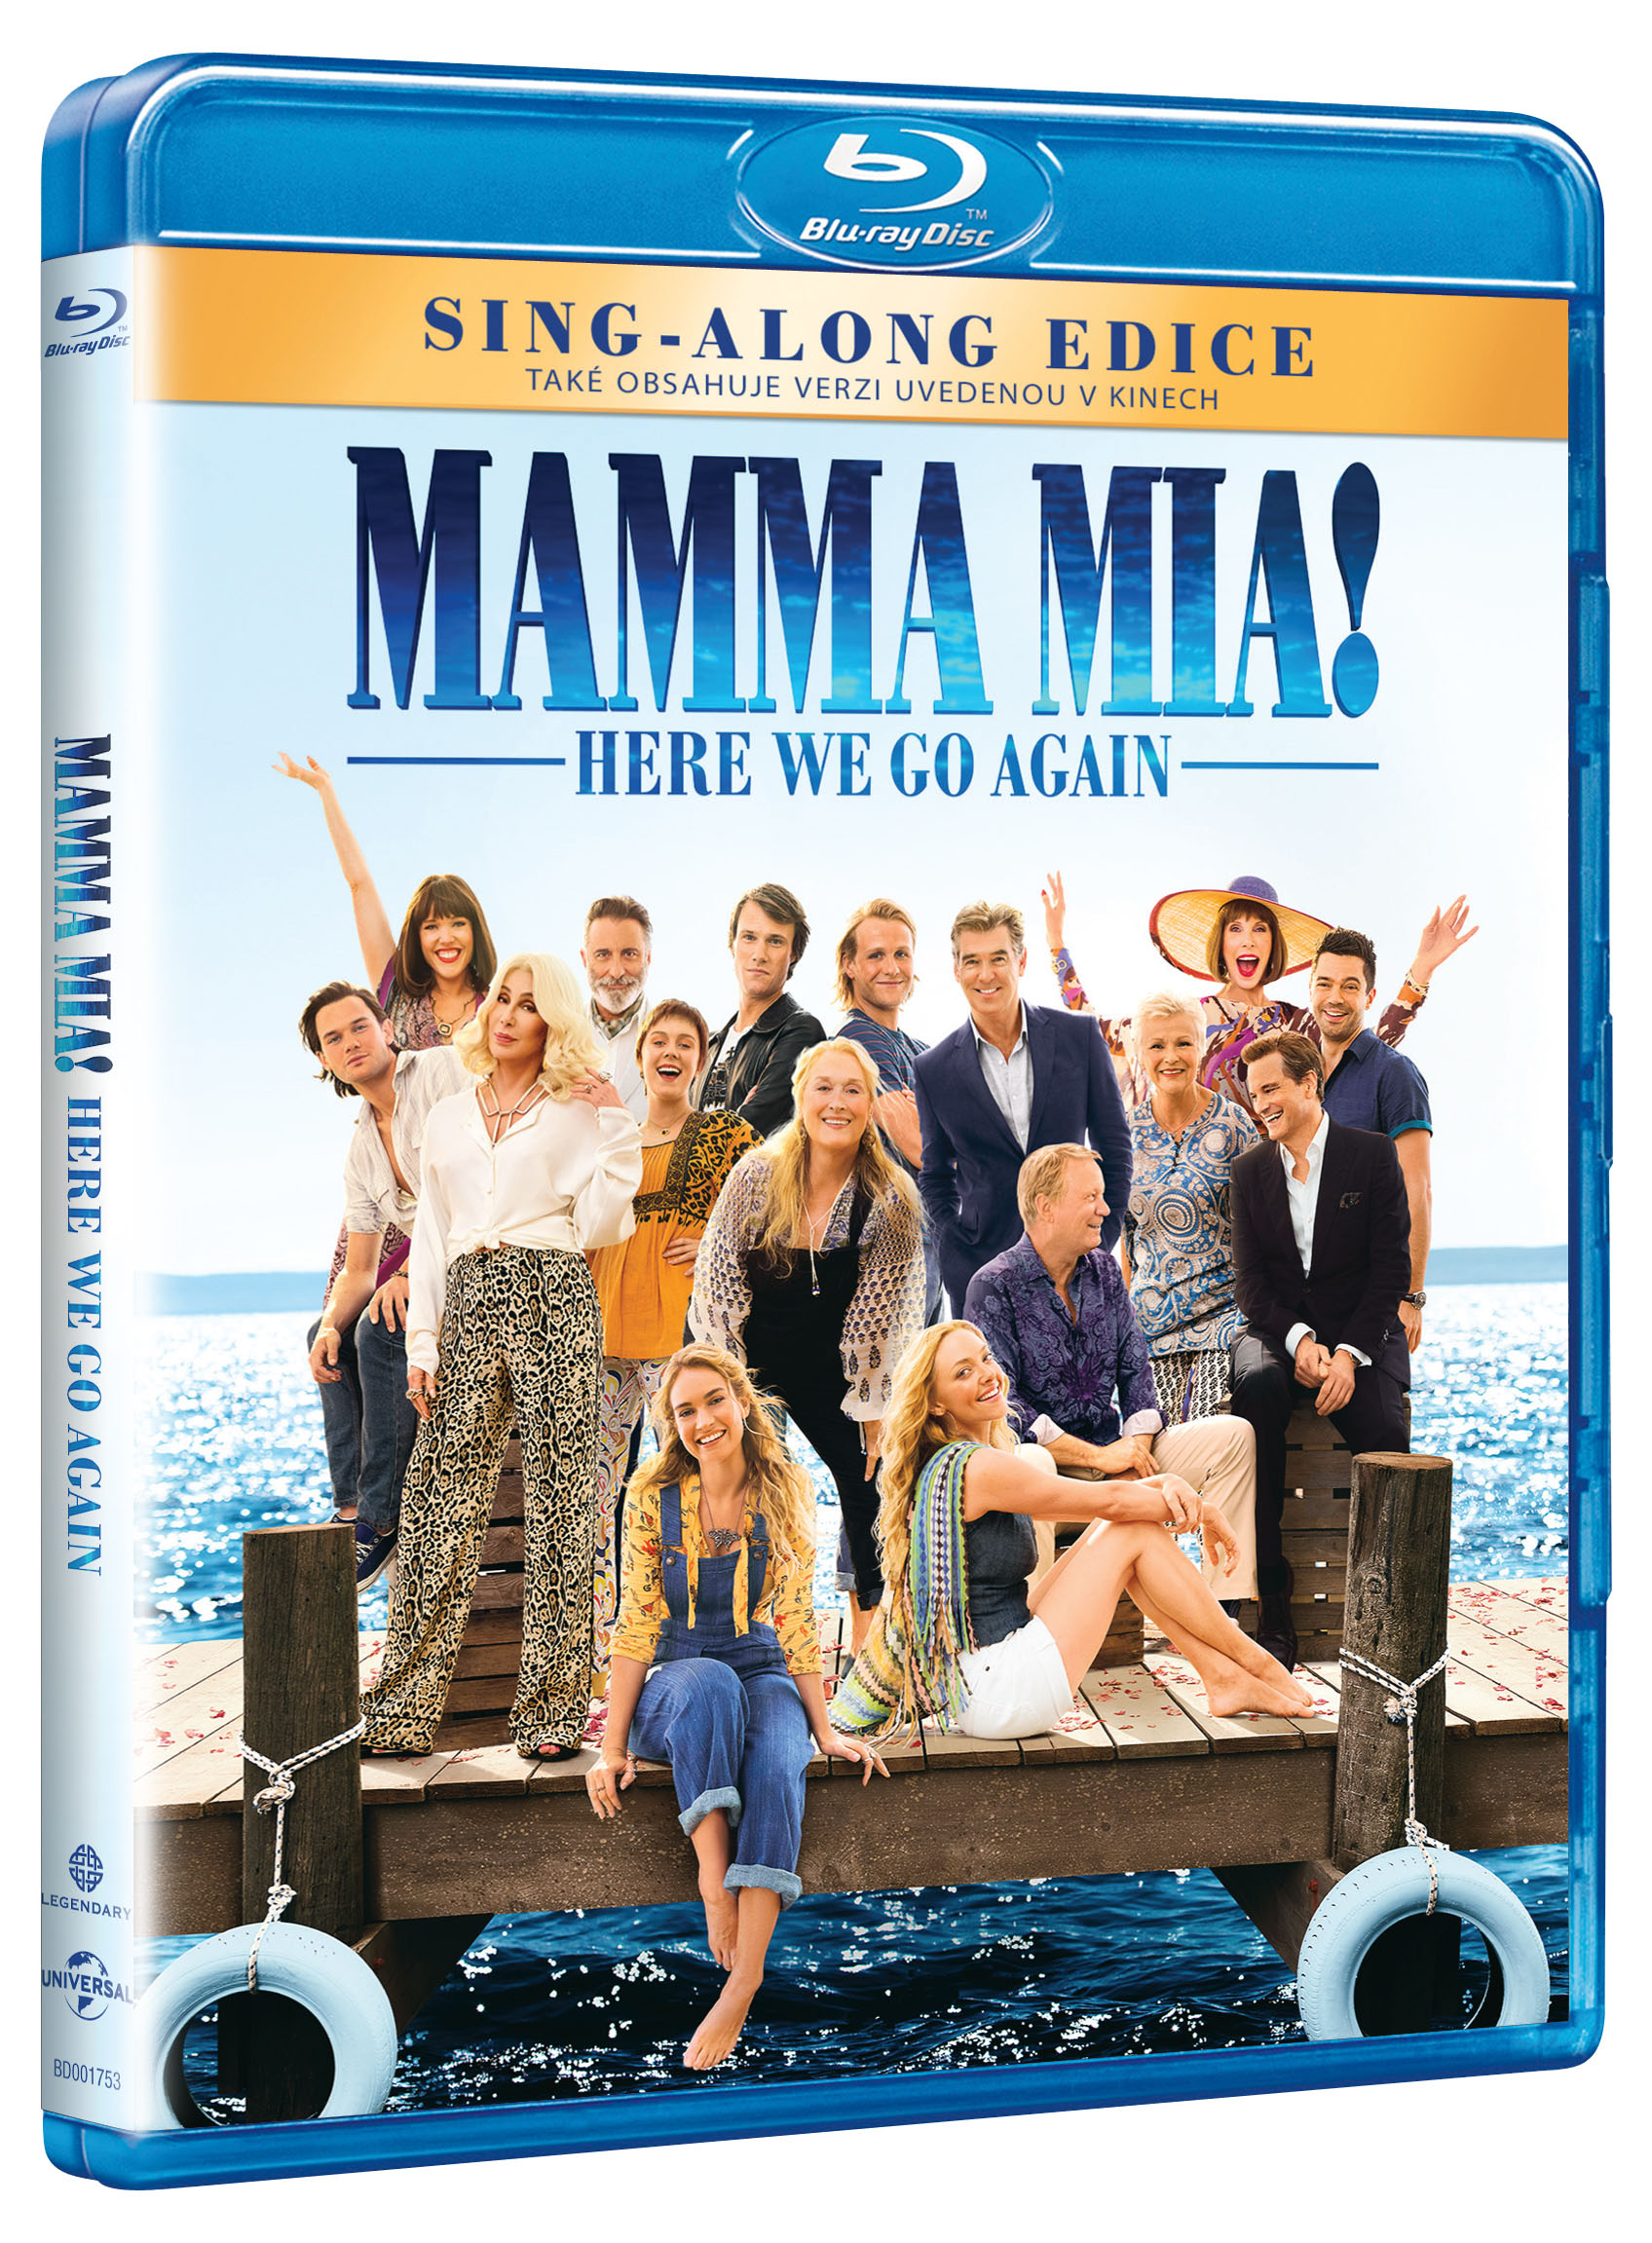 Mamma Mia: Here We Go Again! - Blu-ray